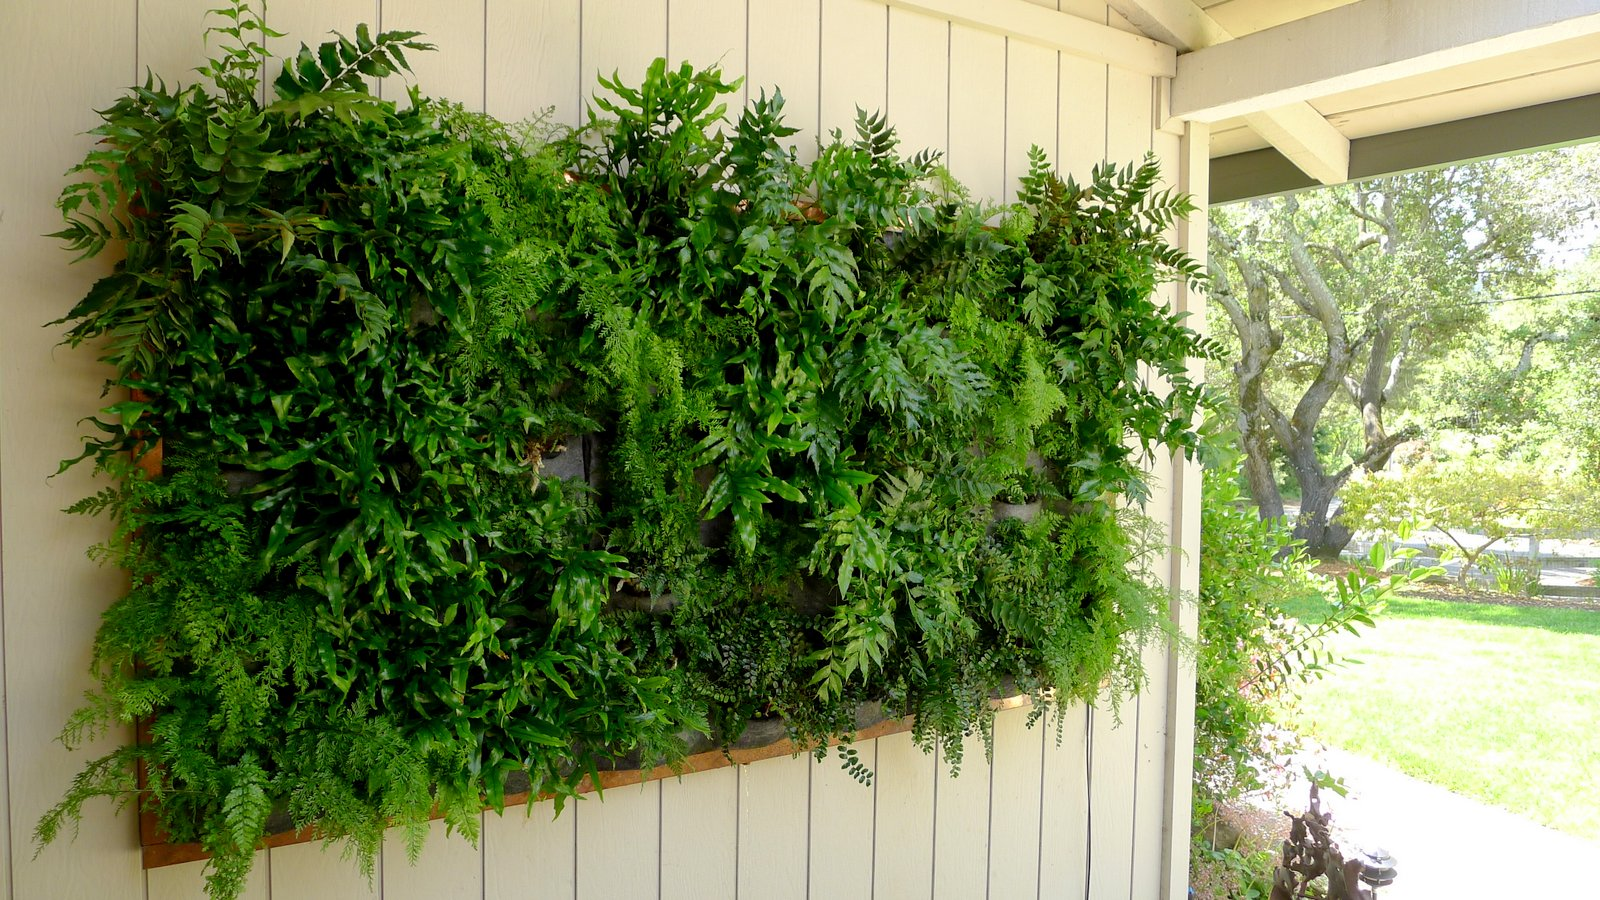 plants on walls vertical garden systems may 2012. Black Bedroom Furniture Sets. Home Design Ideas